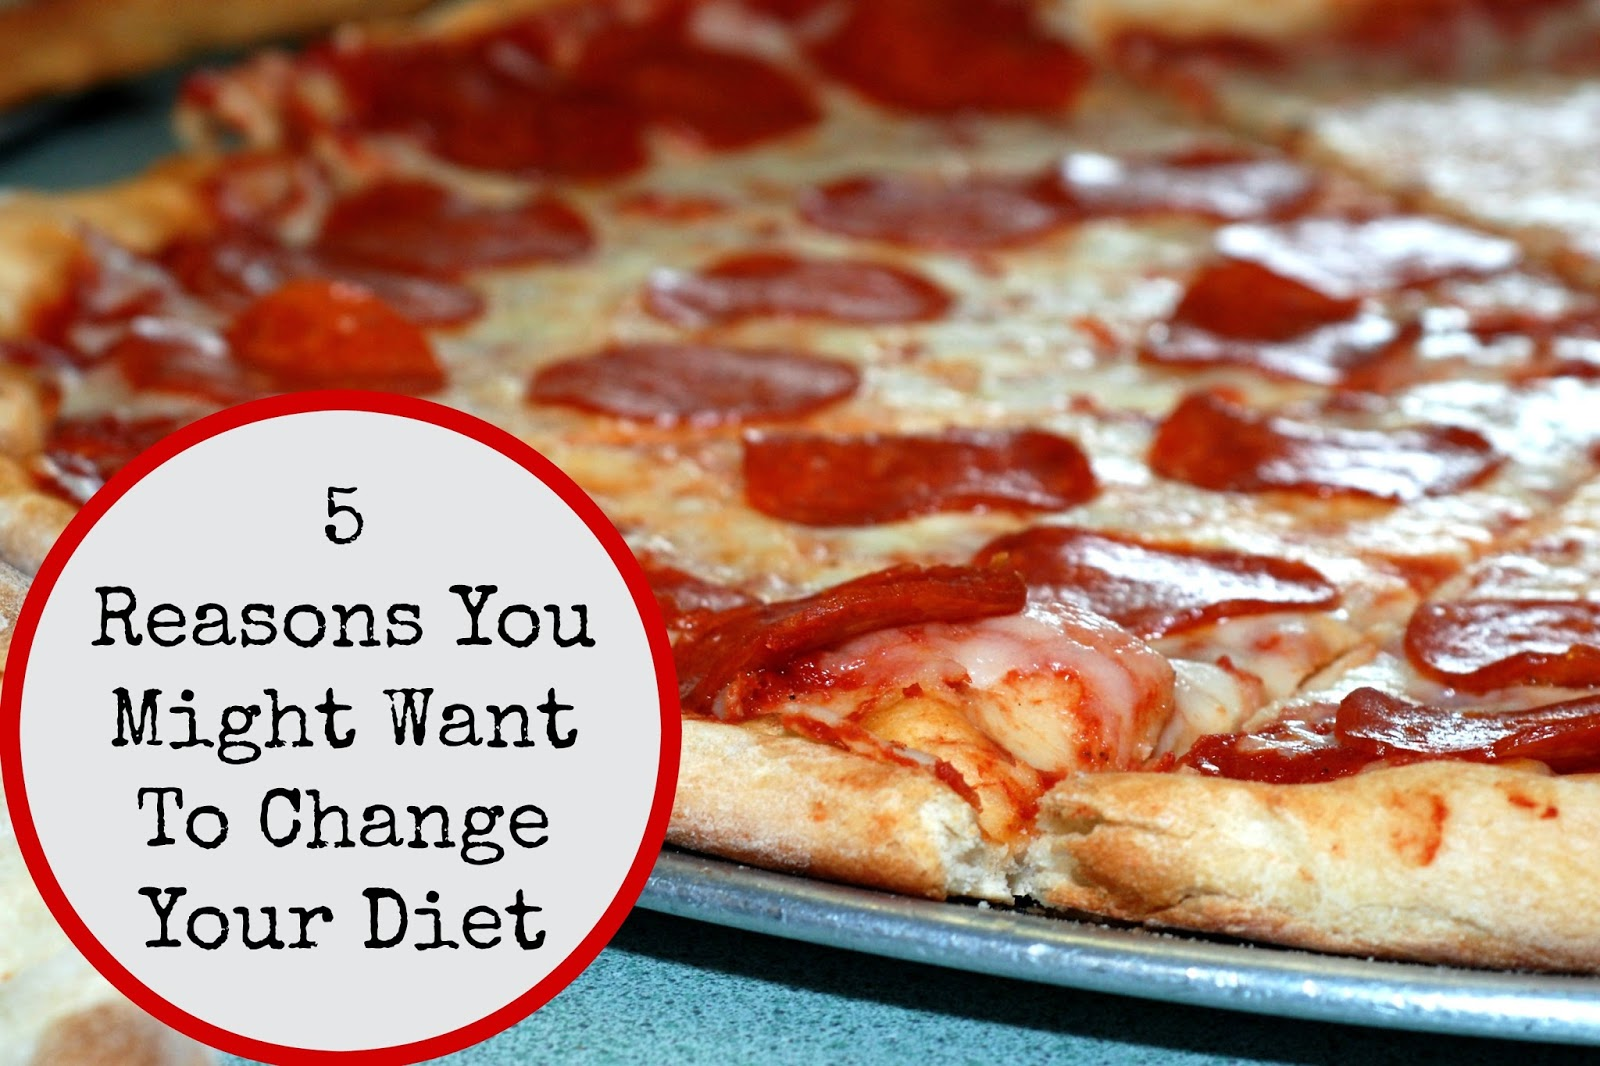 5 Reasons You Might Want To Change Your Diet